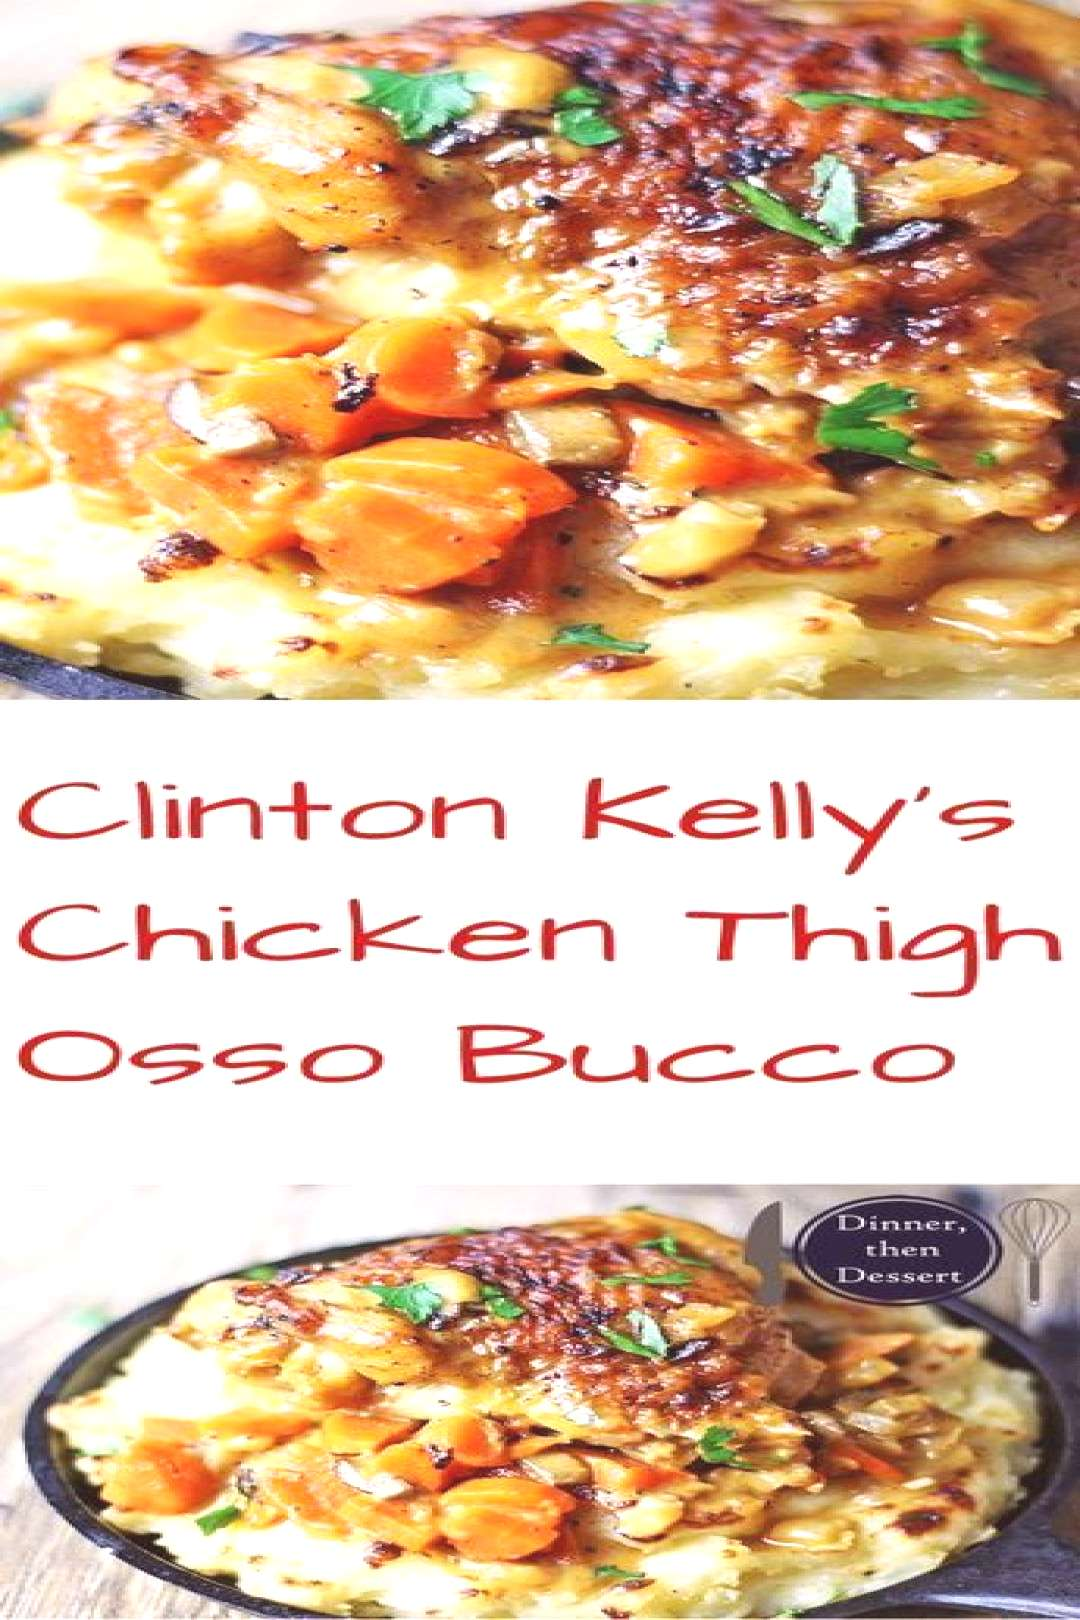 A recipe from The Chew amp Clinton Kelly! Rich, hearty play on the Italian classic Osso Bucco, chicke